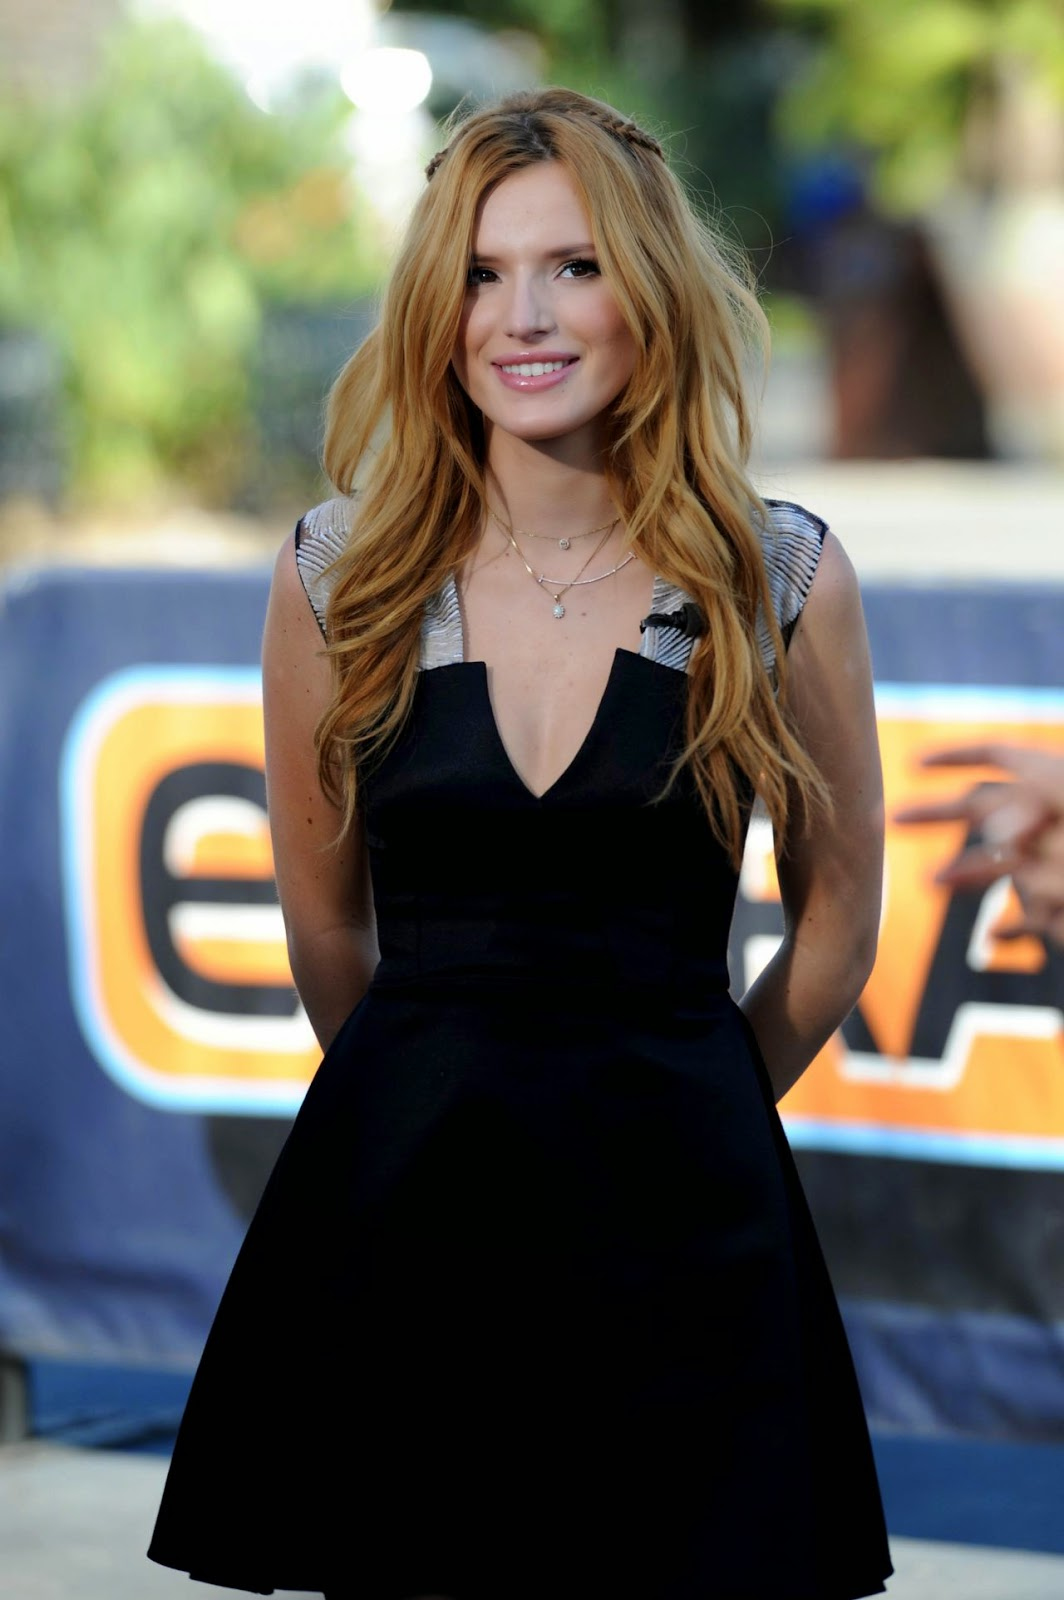 Bella Thorne wears a little black dress to the set of Extra in Universal City